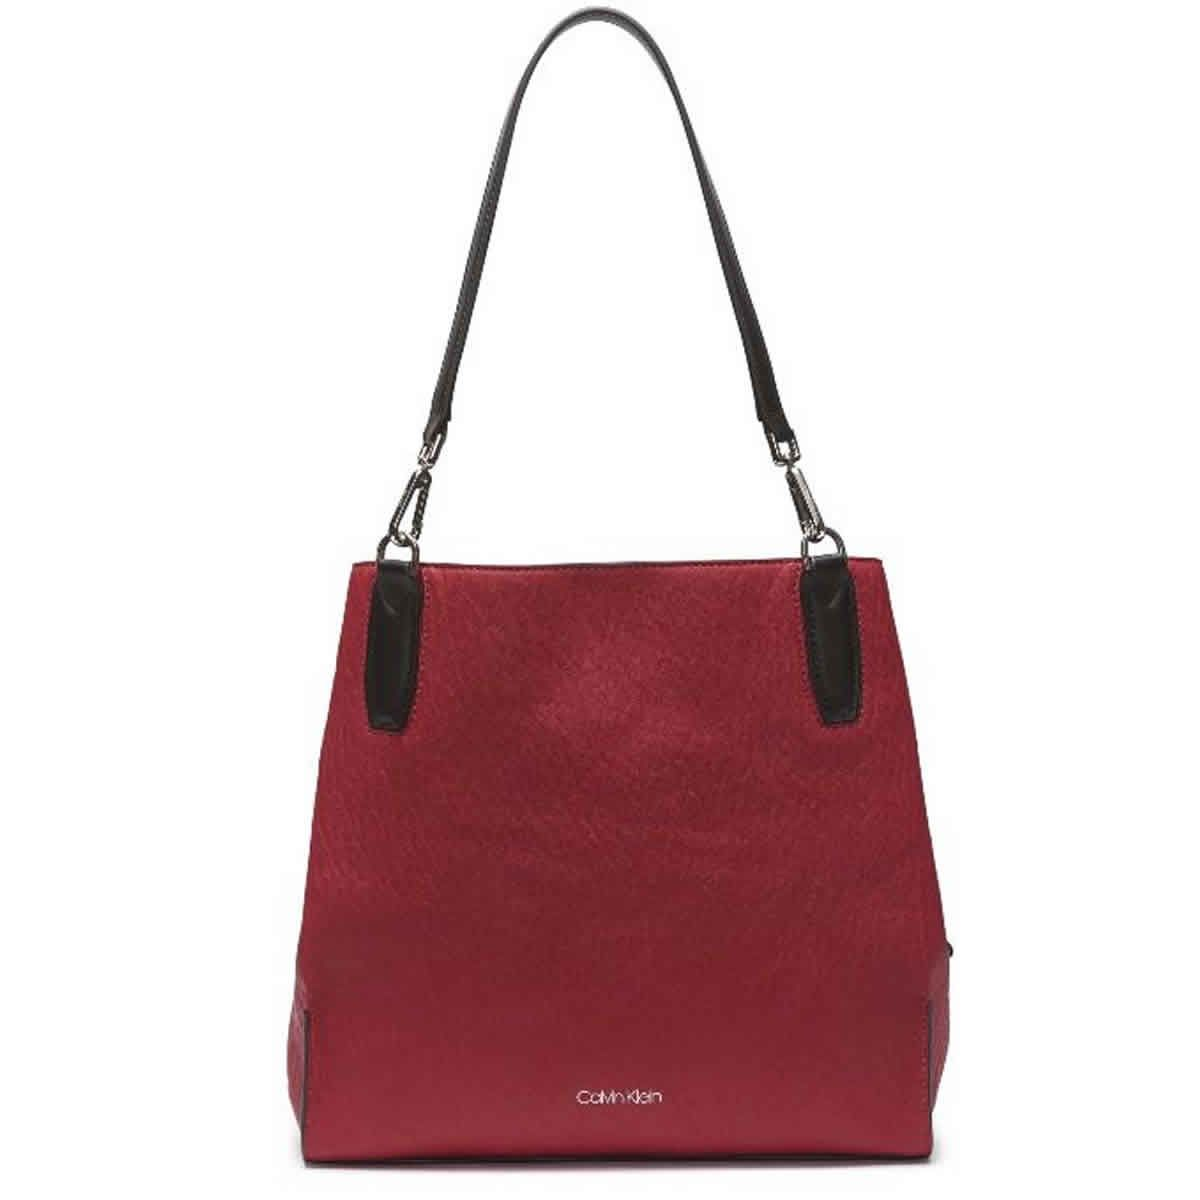 5c8153add Calvin Klein Handbags & Bags - Macy's